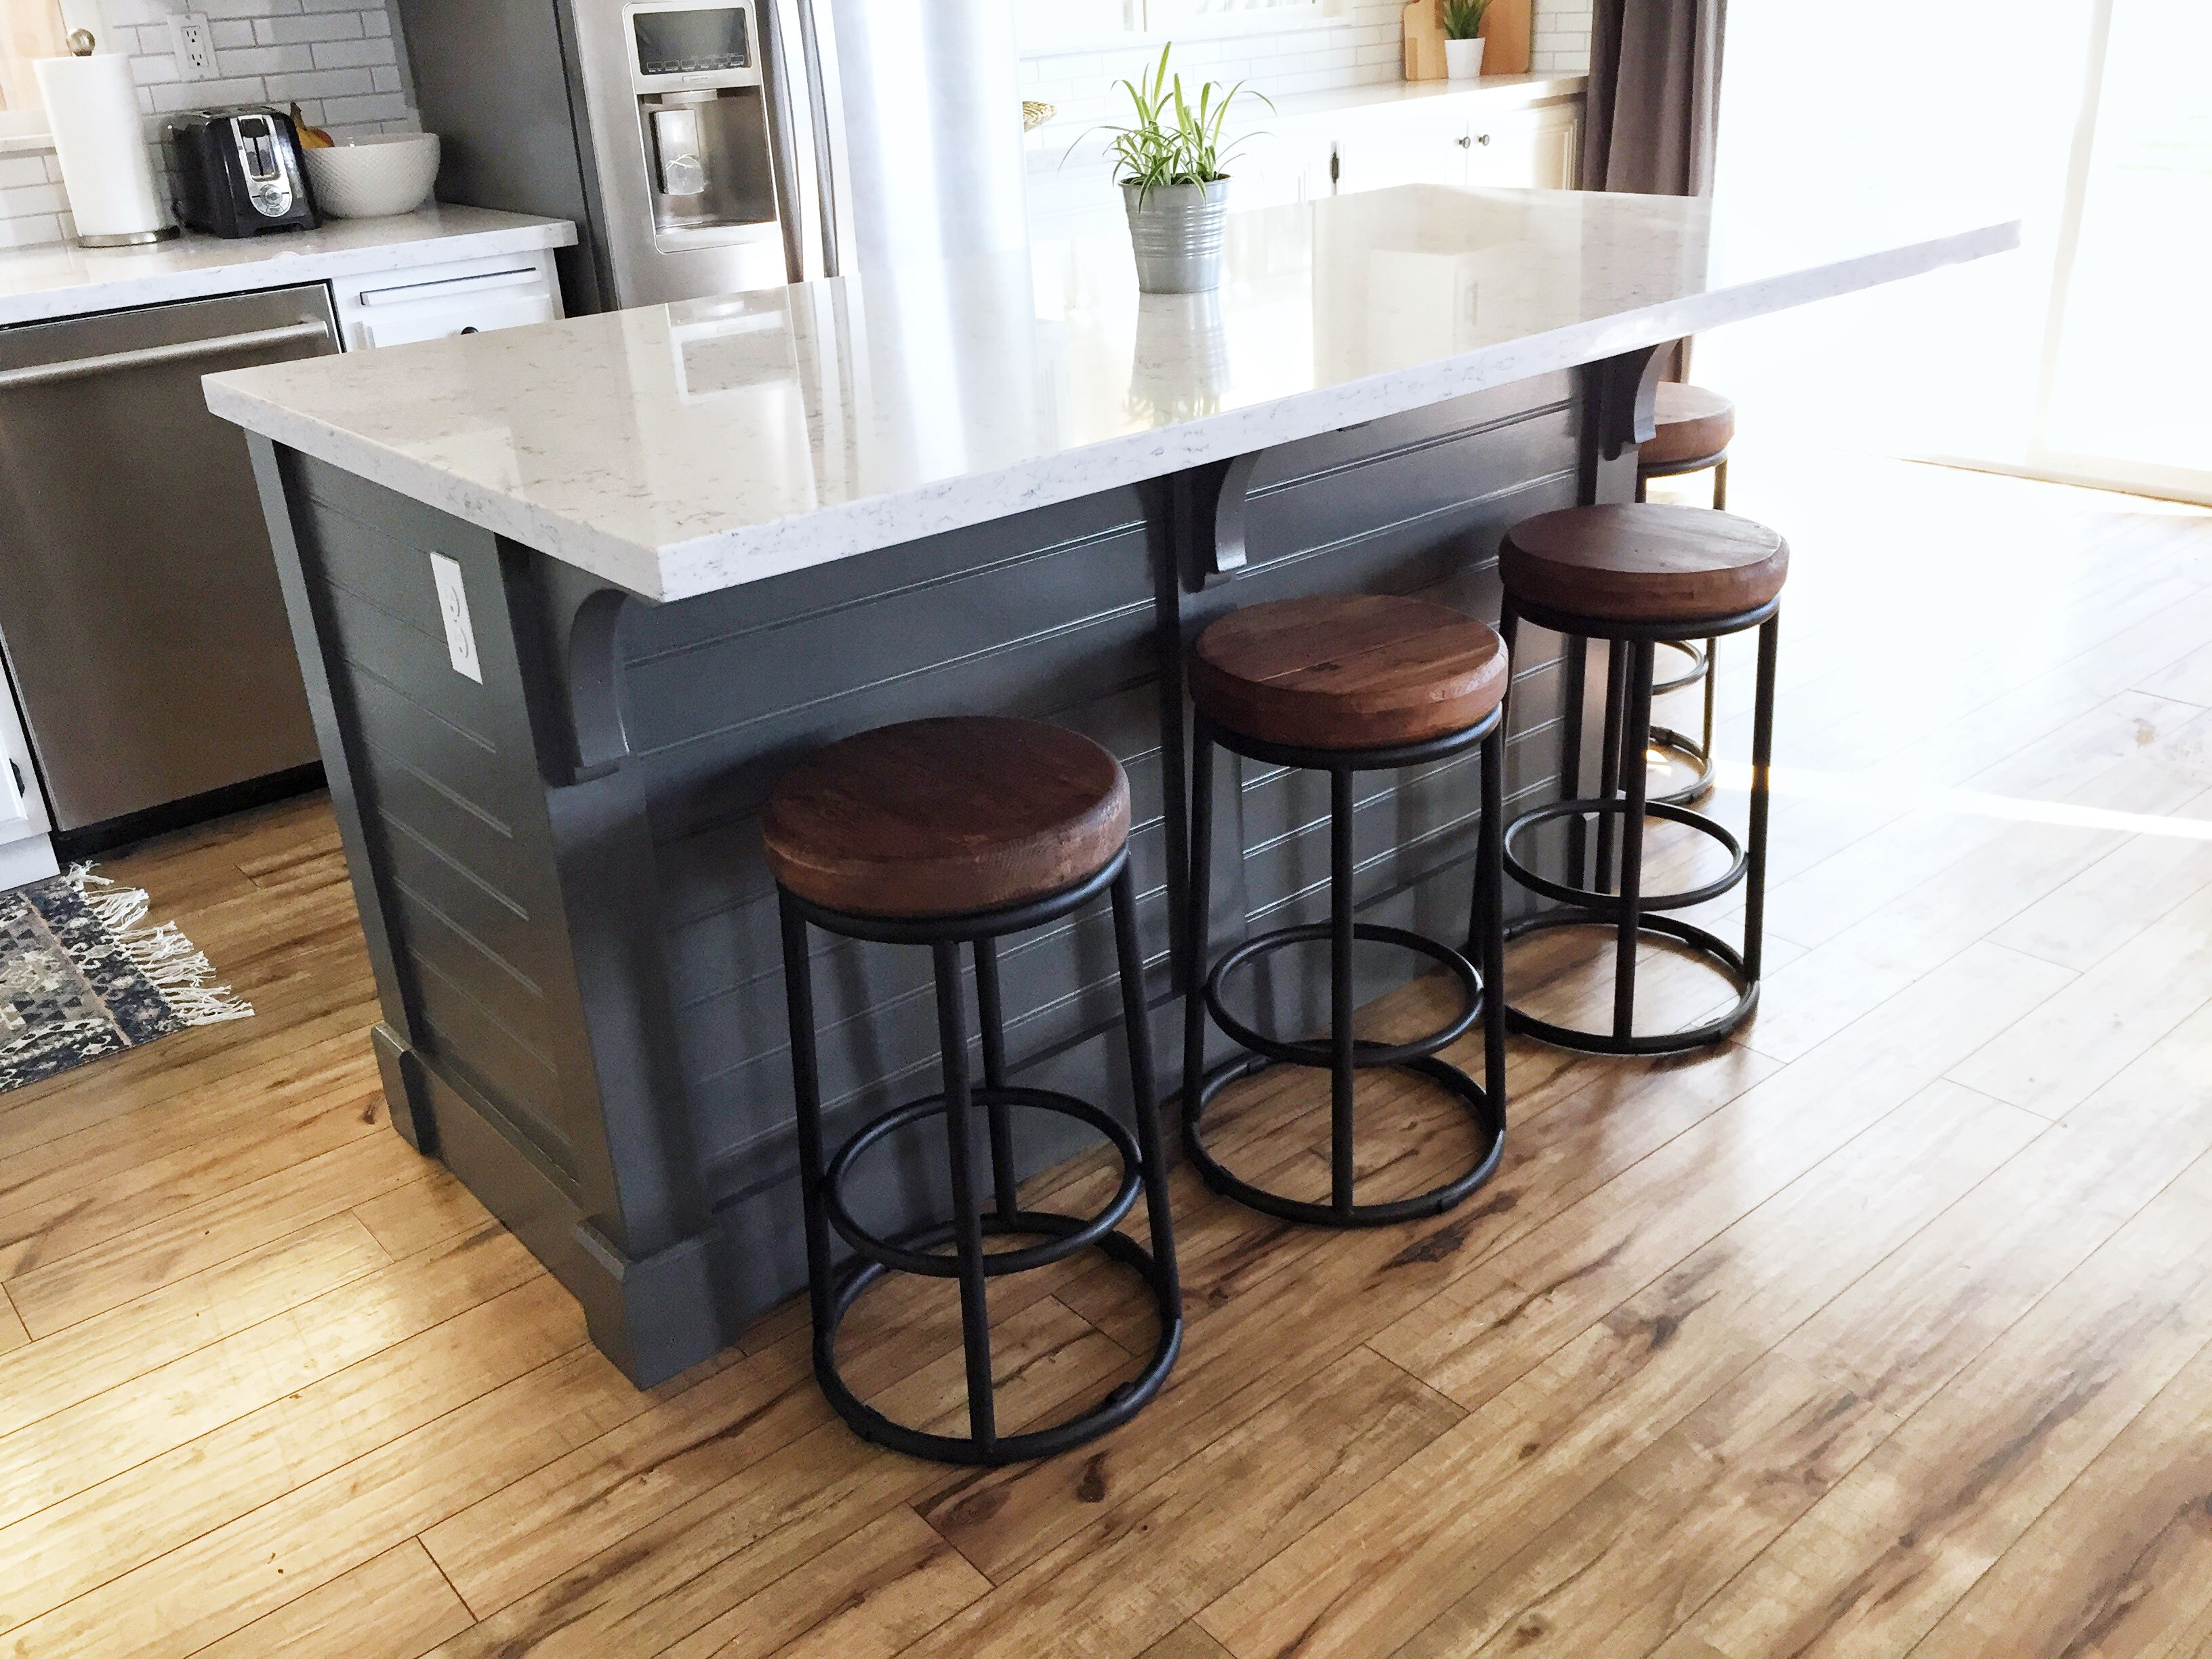 A DIY Kitchen Island Make it yourself and Save Big For